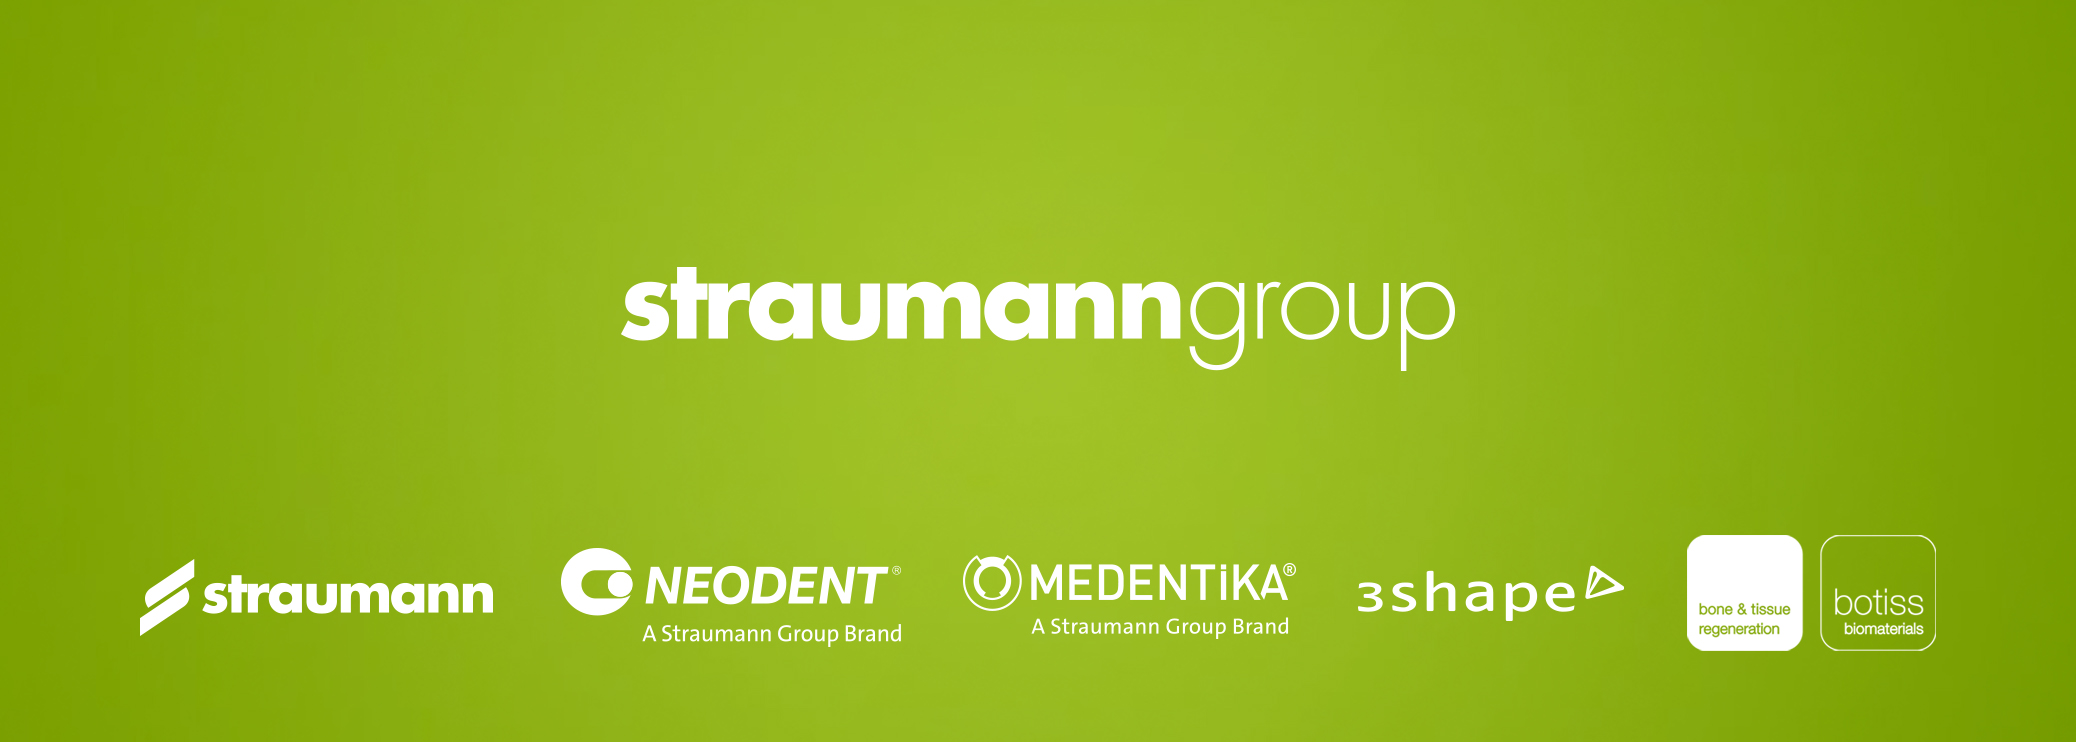 Straumann Group